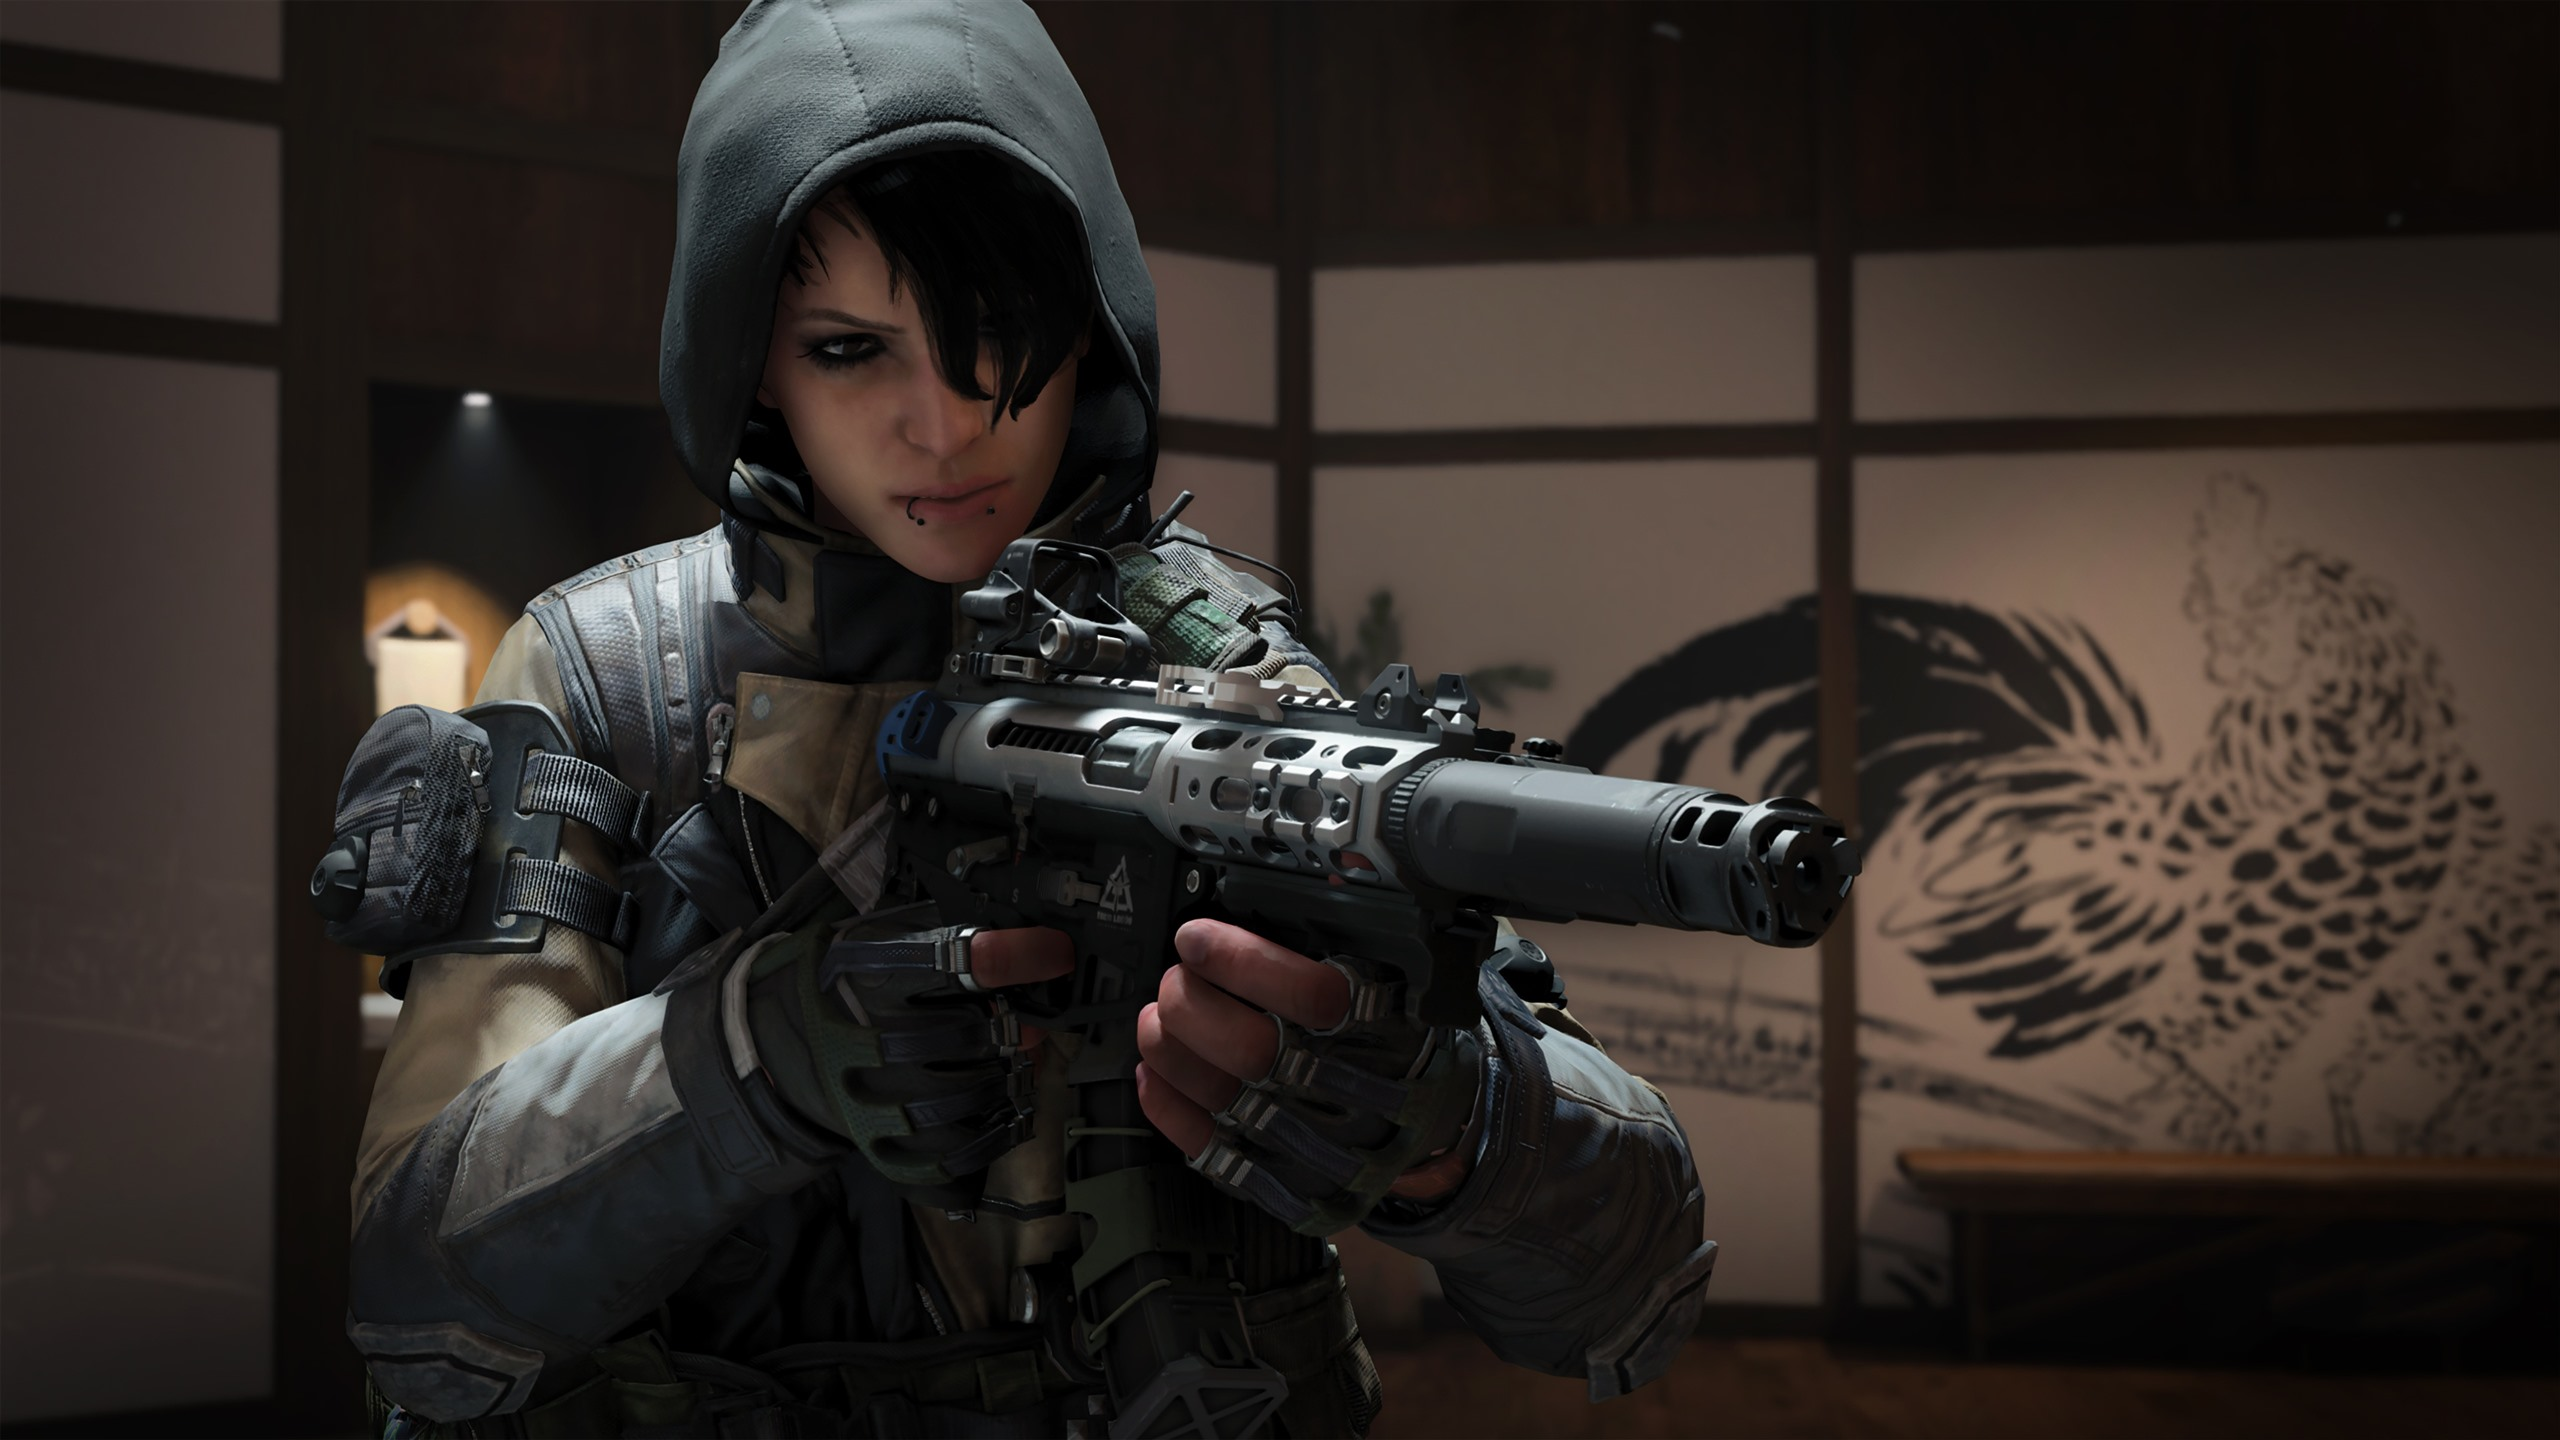 Wallpaper Call Of Duty Black Ops 4 Soldier Weapon 3840x2160 Uhd